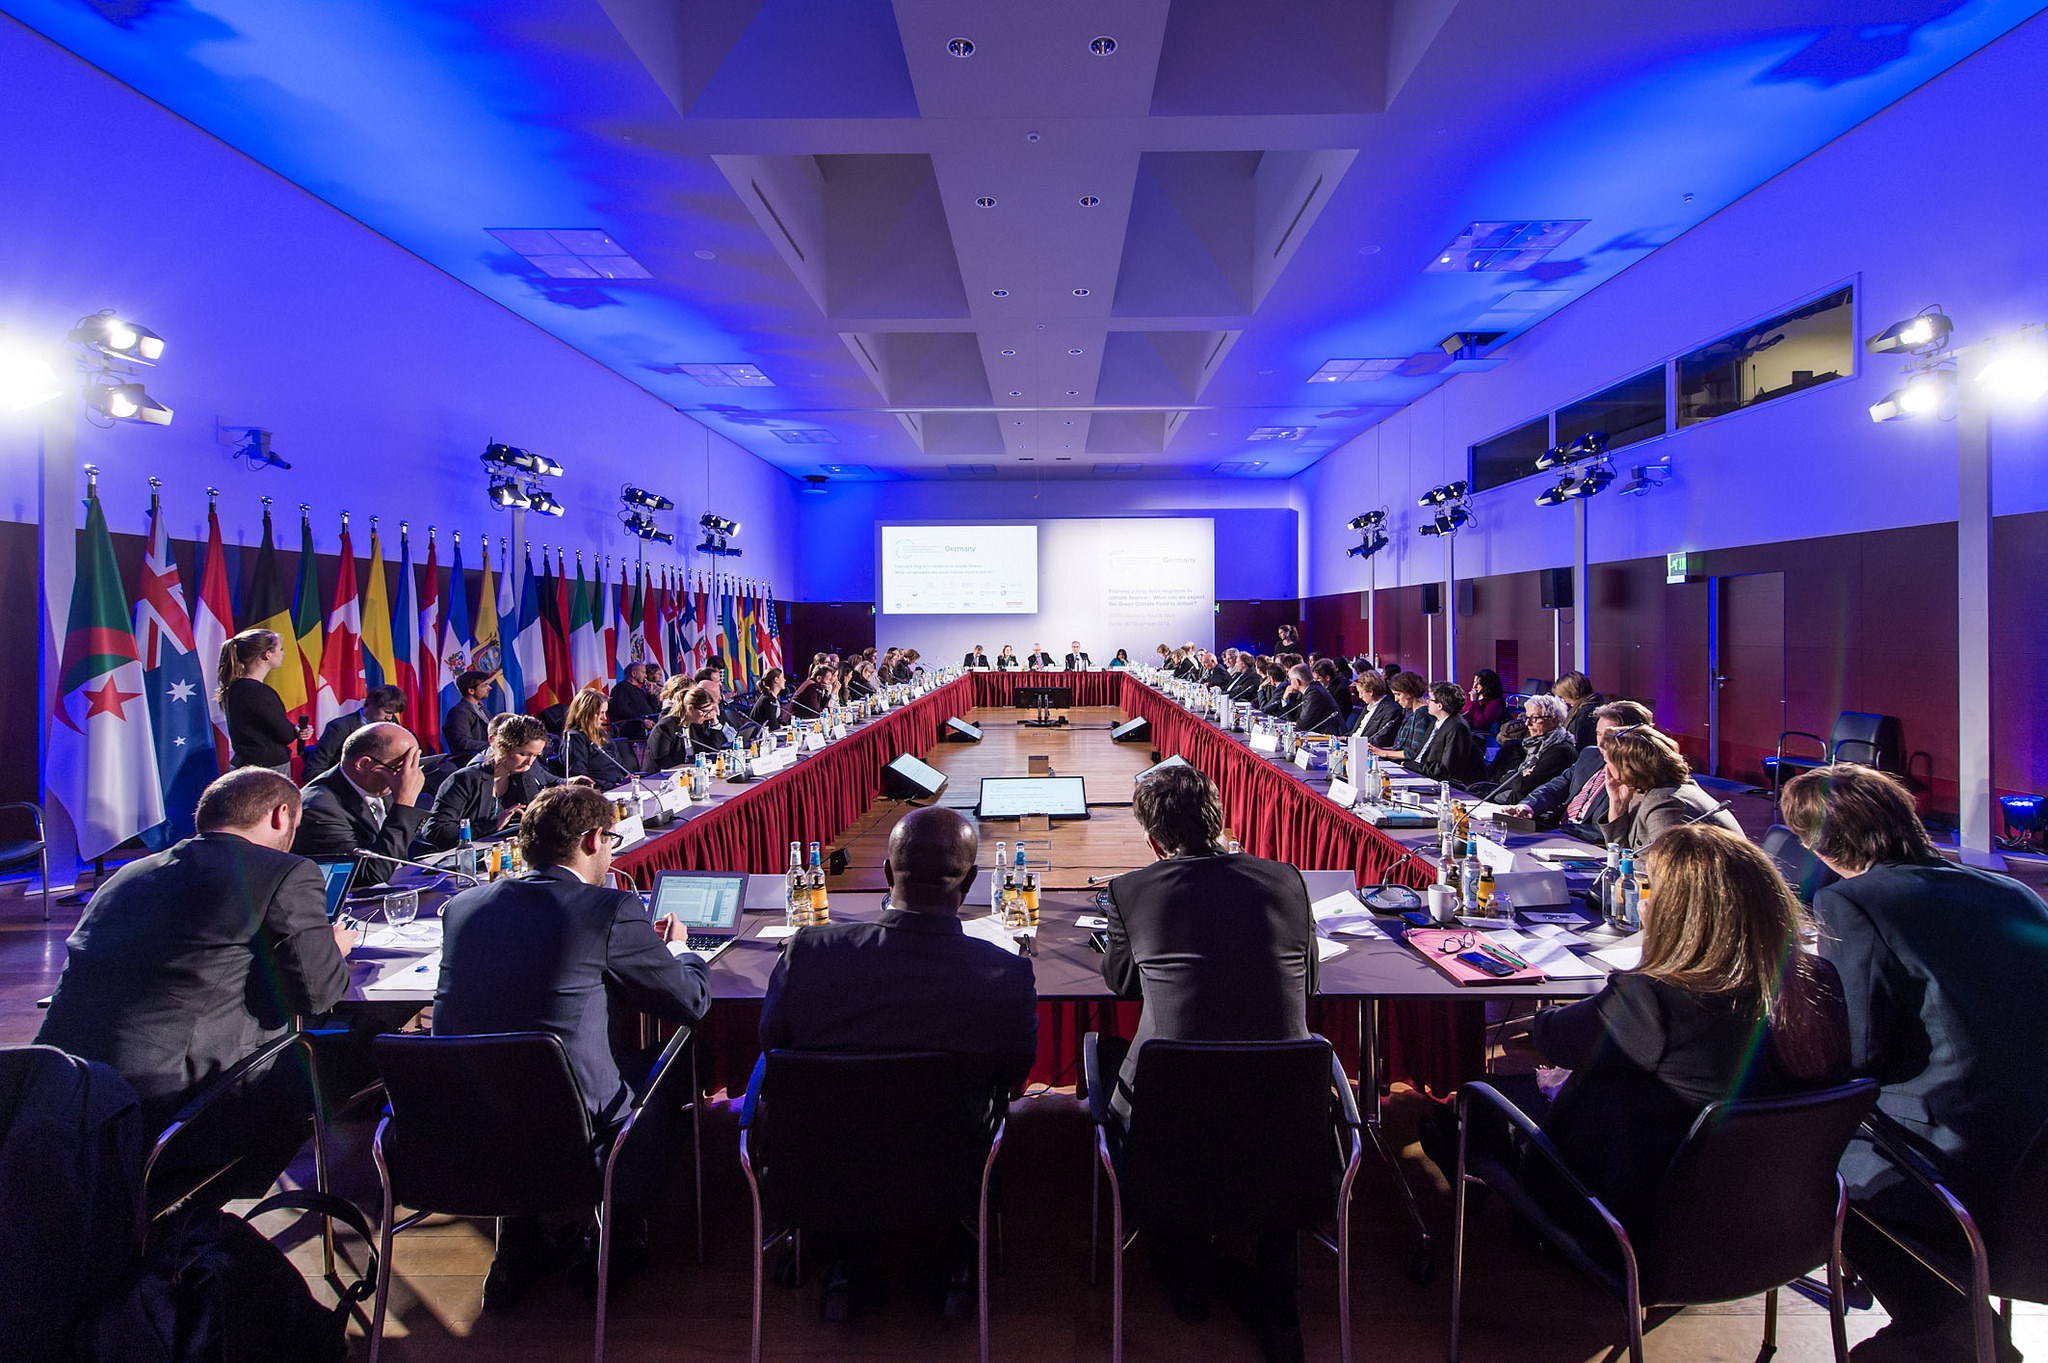 <p>2014 meetings yielded $10.3 billion pledged to the GCF. Flickr/German Development Institute</p>